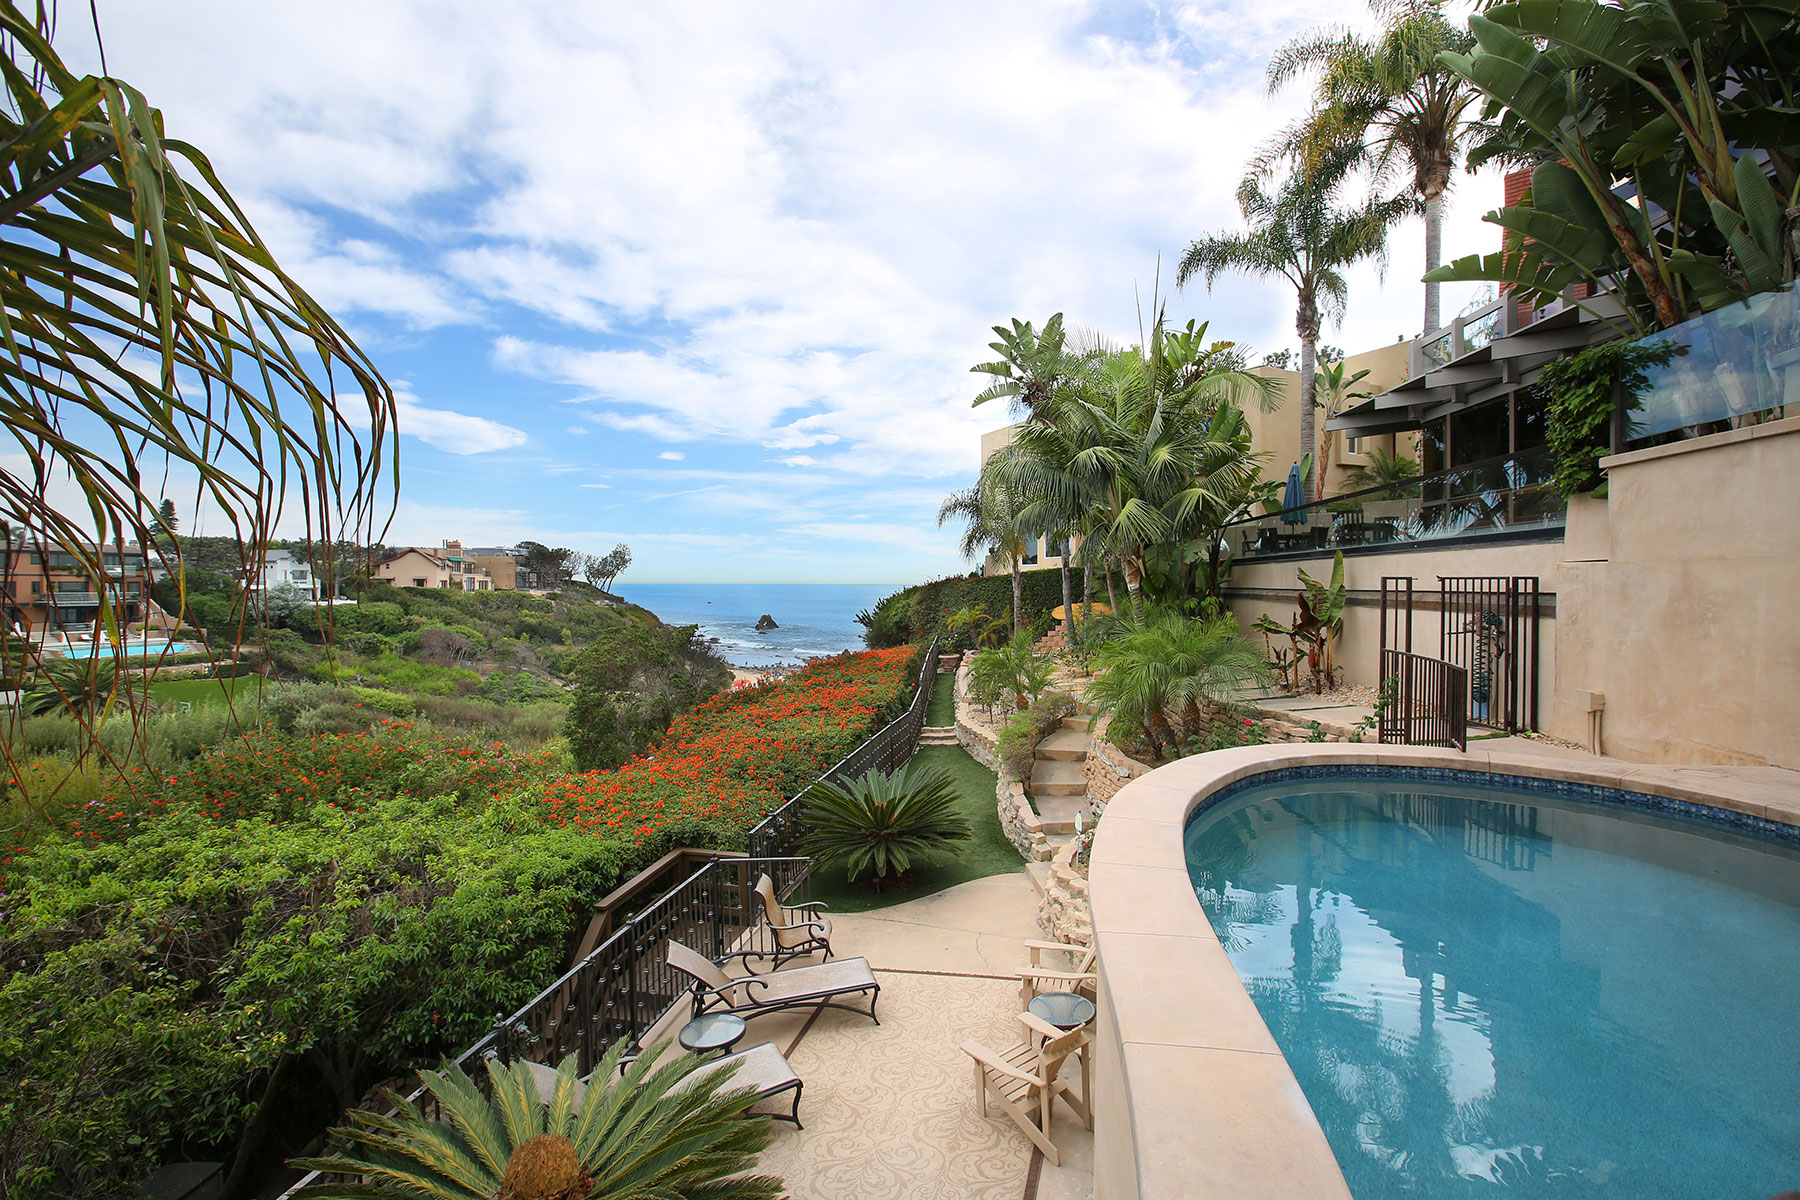 Single Family Home for Sale at Idyllic Seaside Living 218 Hazel Drive Corona Del Mar, California, 92625 United States